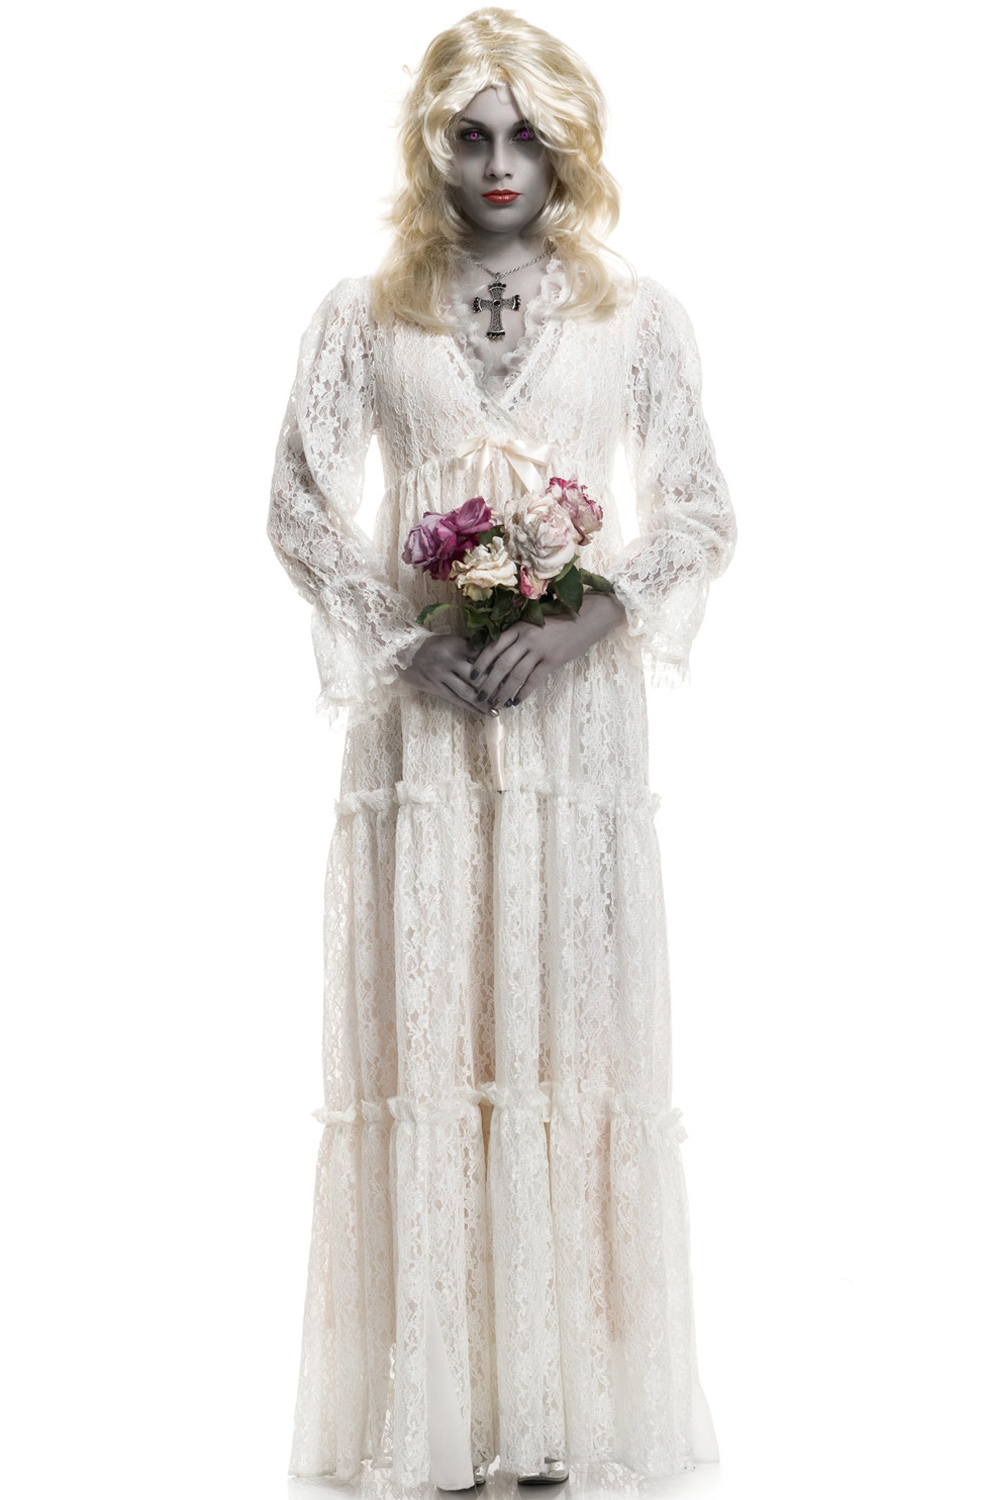 lost soul wedding gown costume by charades 03099v com